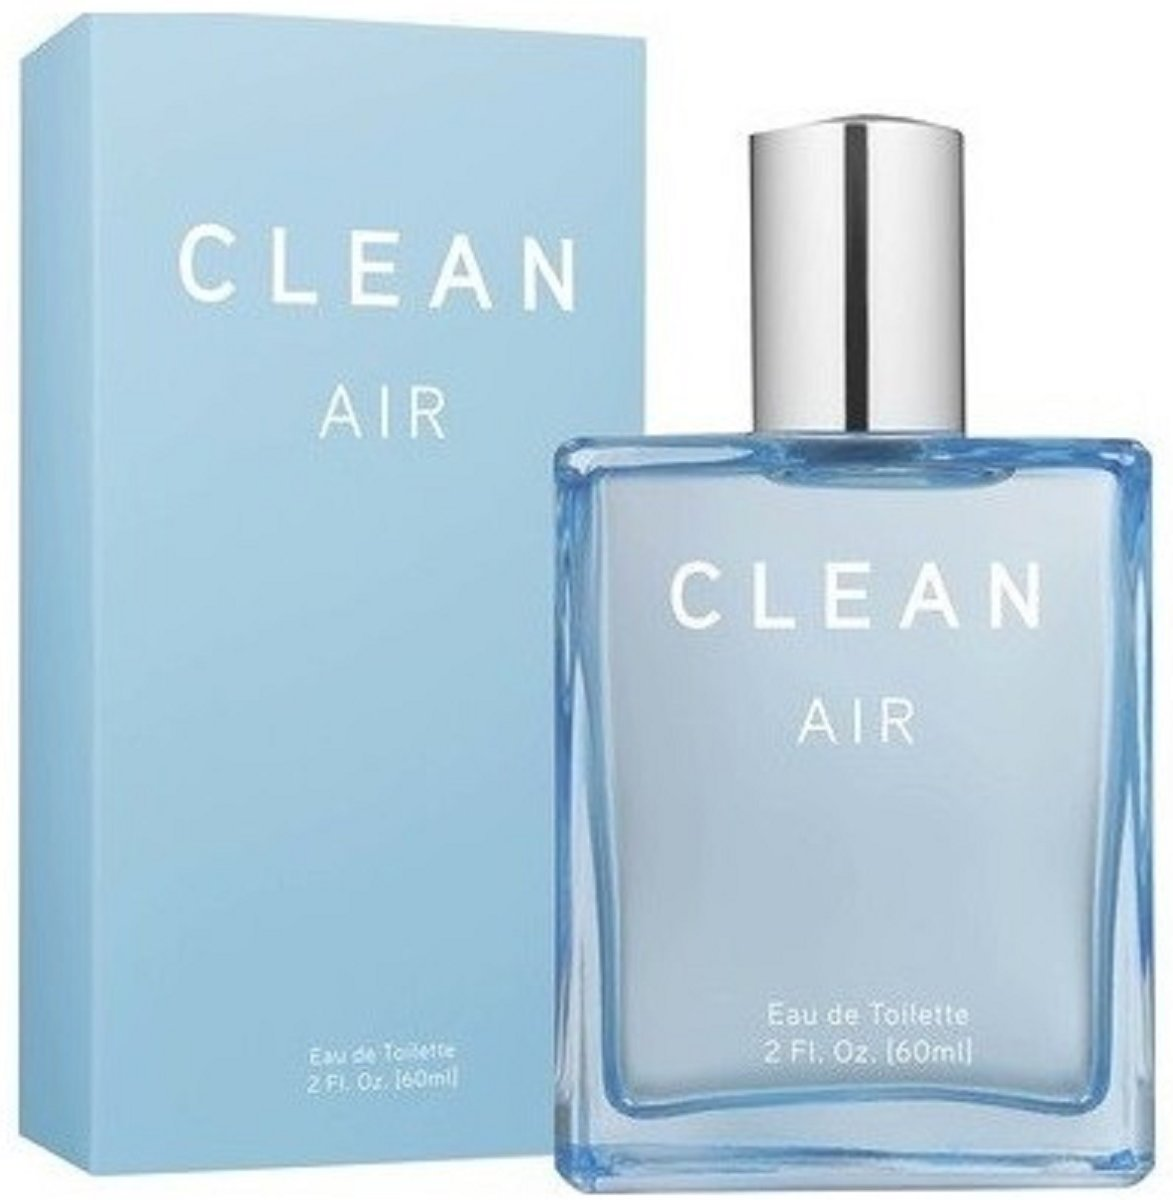 Clean Air Eau De Toilette 60Ml